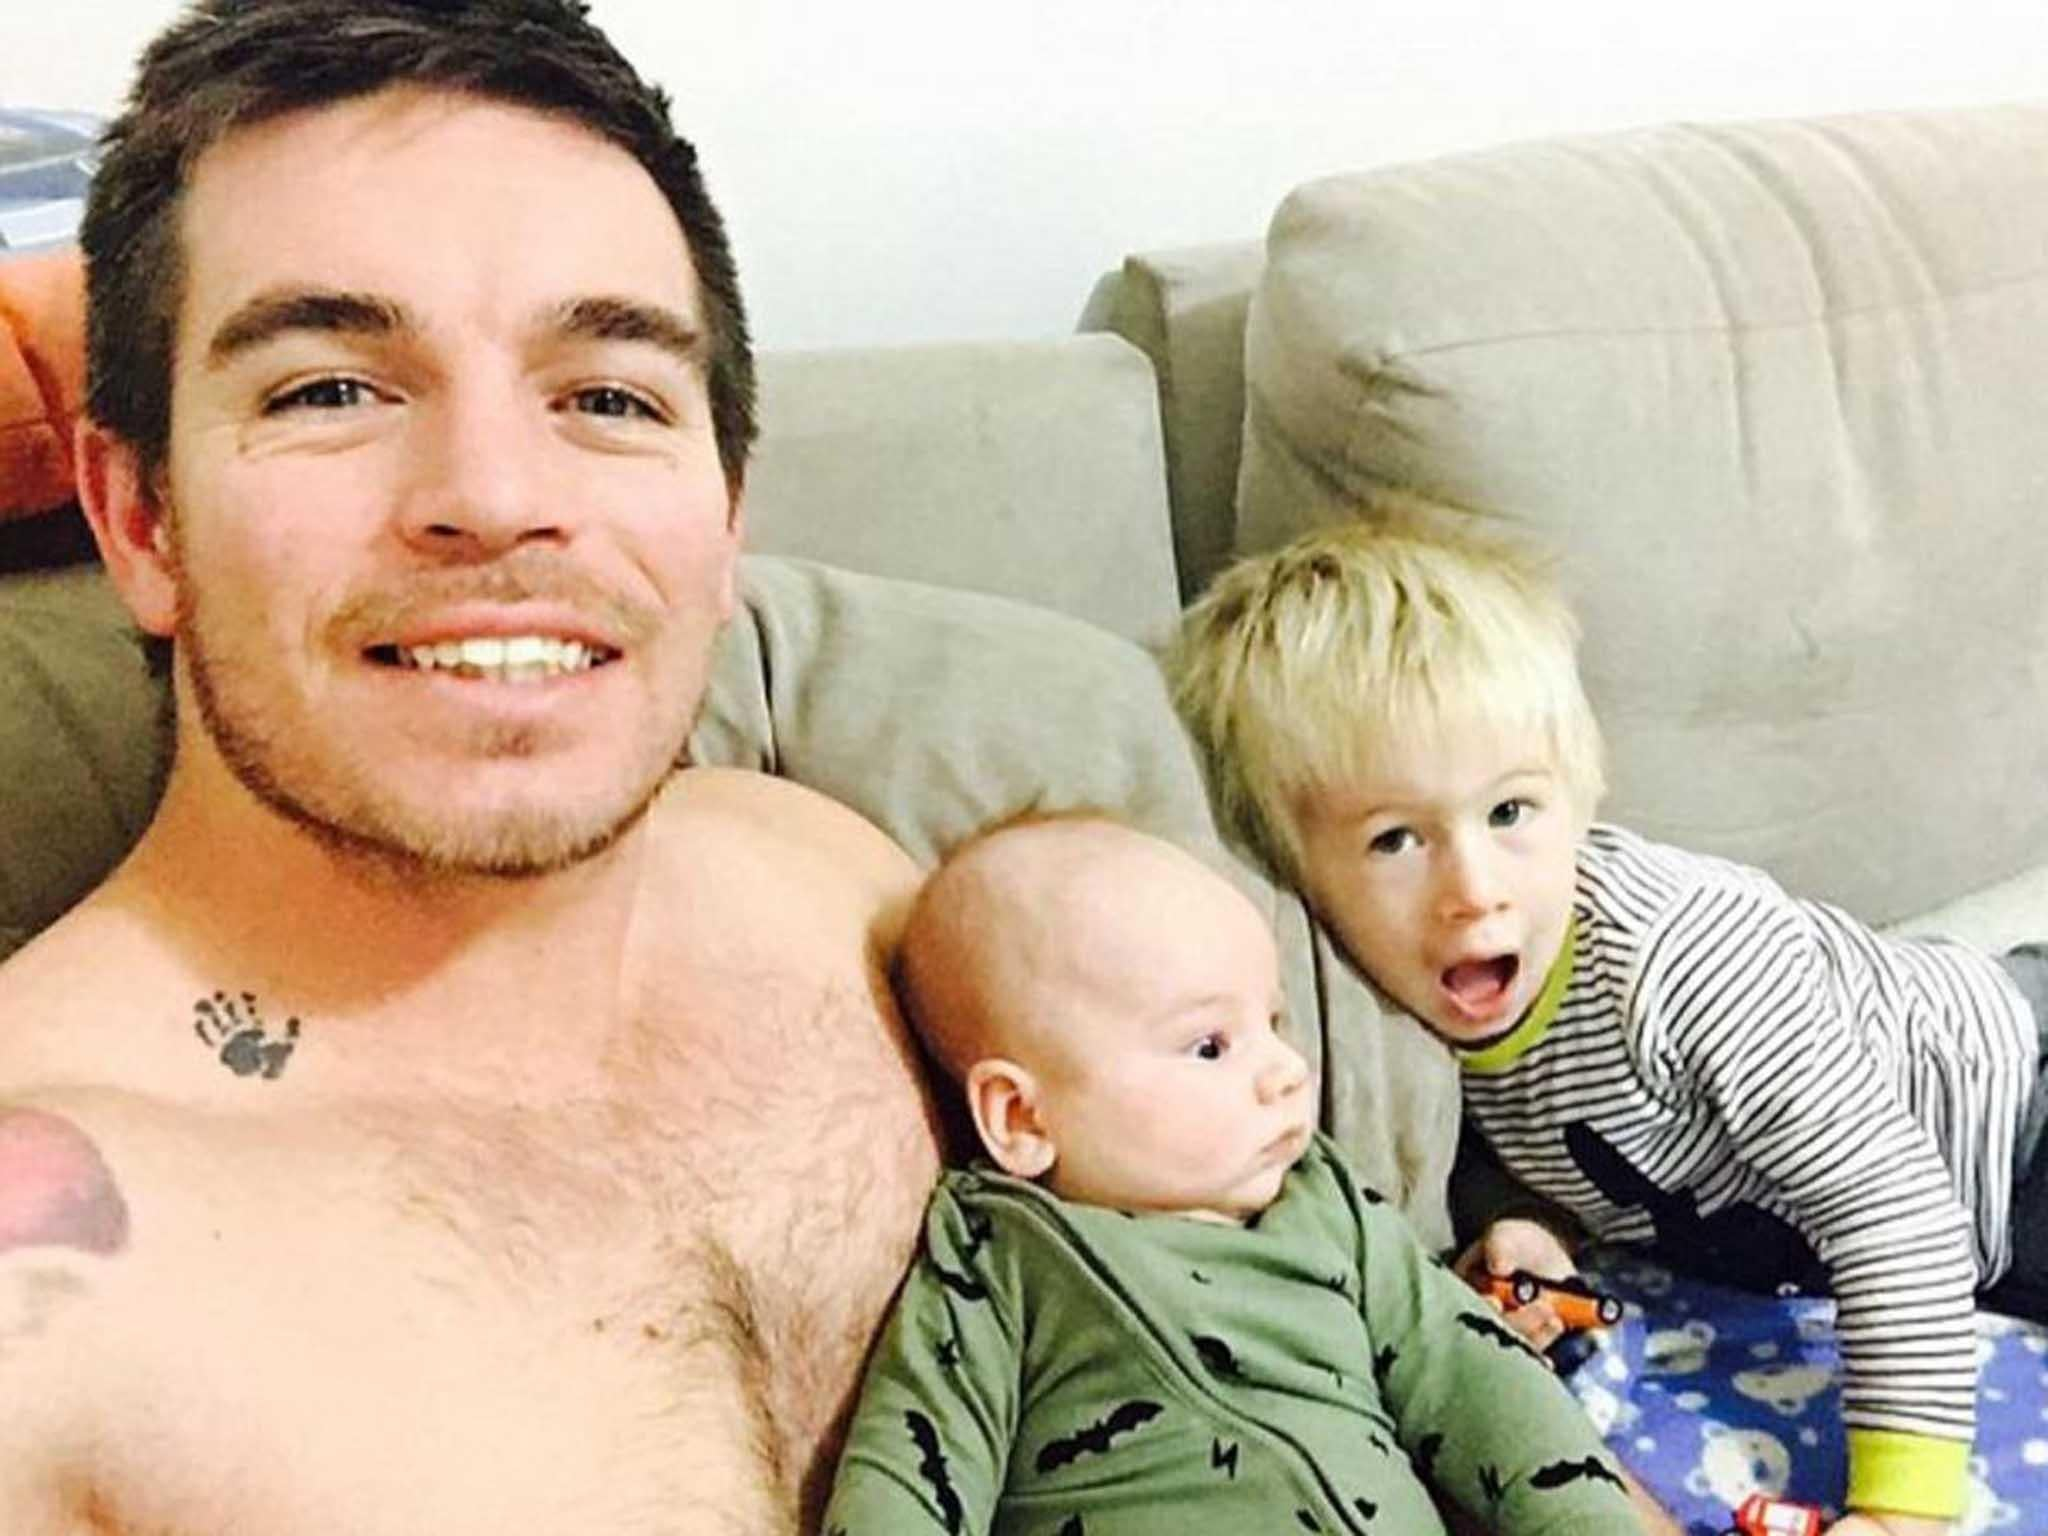 'Holy f**k! A baby is about to come out of my wife': Australian dad blogger reports from the front line as his partner gives birth